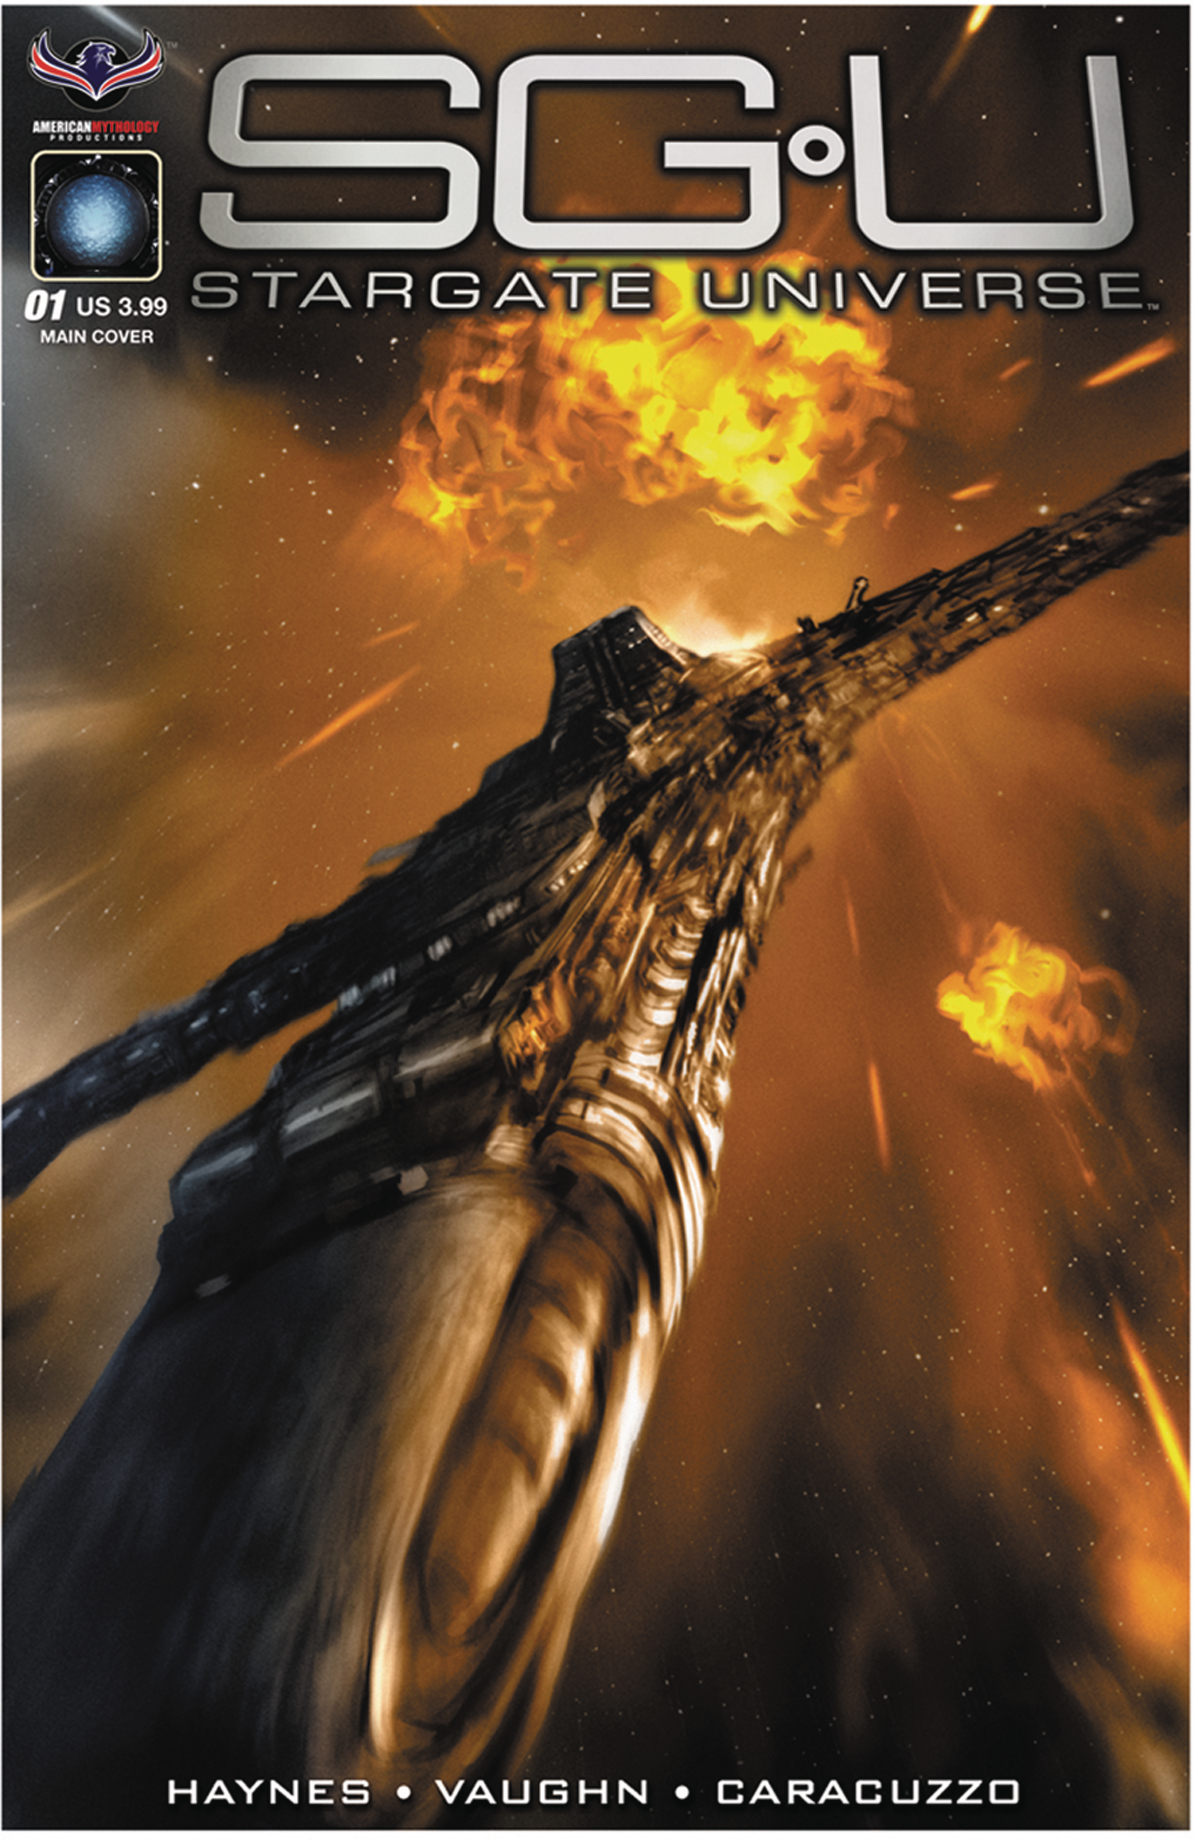 STARGATE UNIVERSE BACK TO DESTINY #1 SCALF CVR